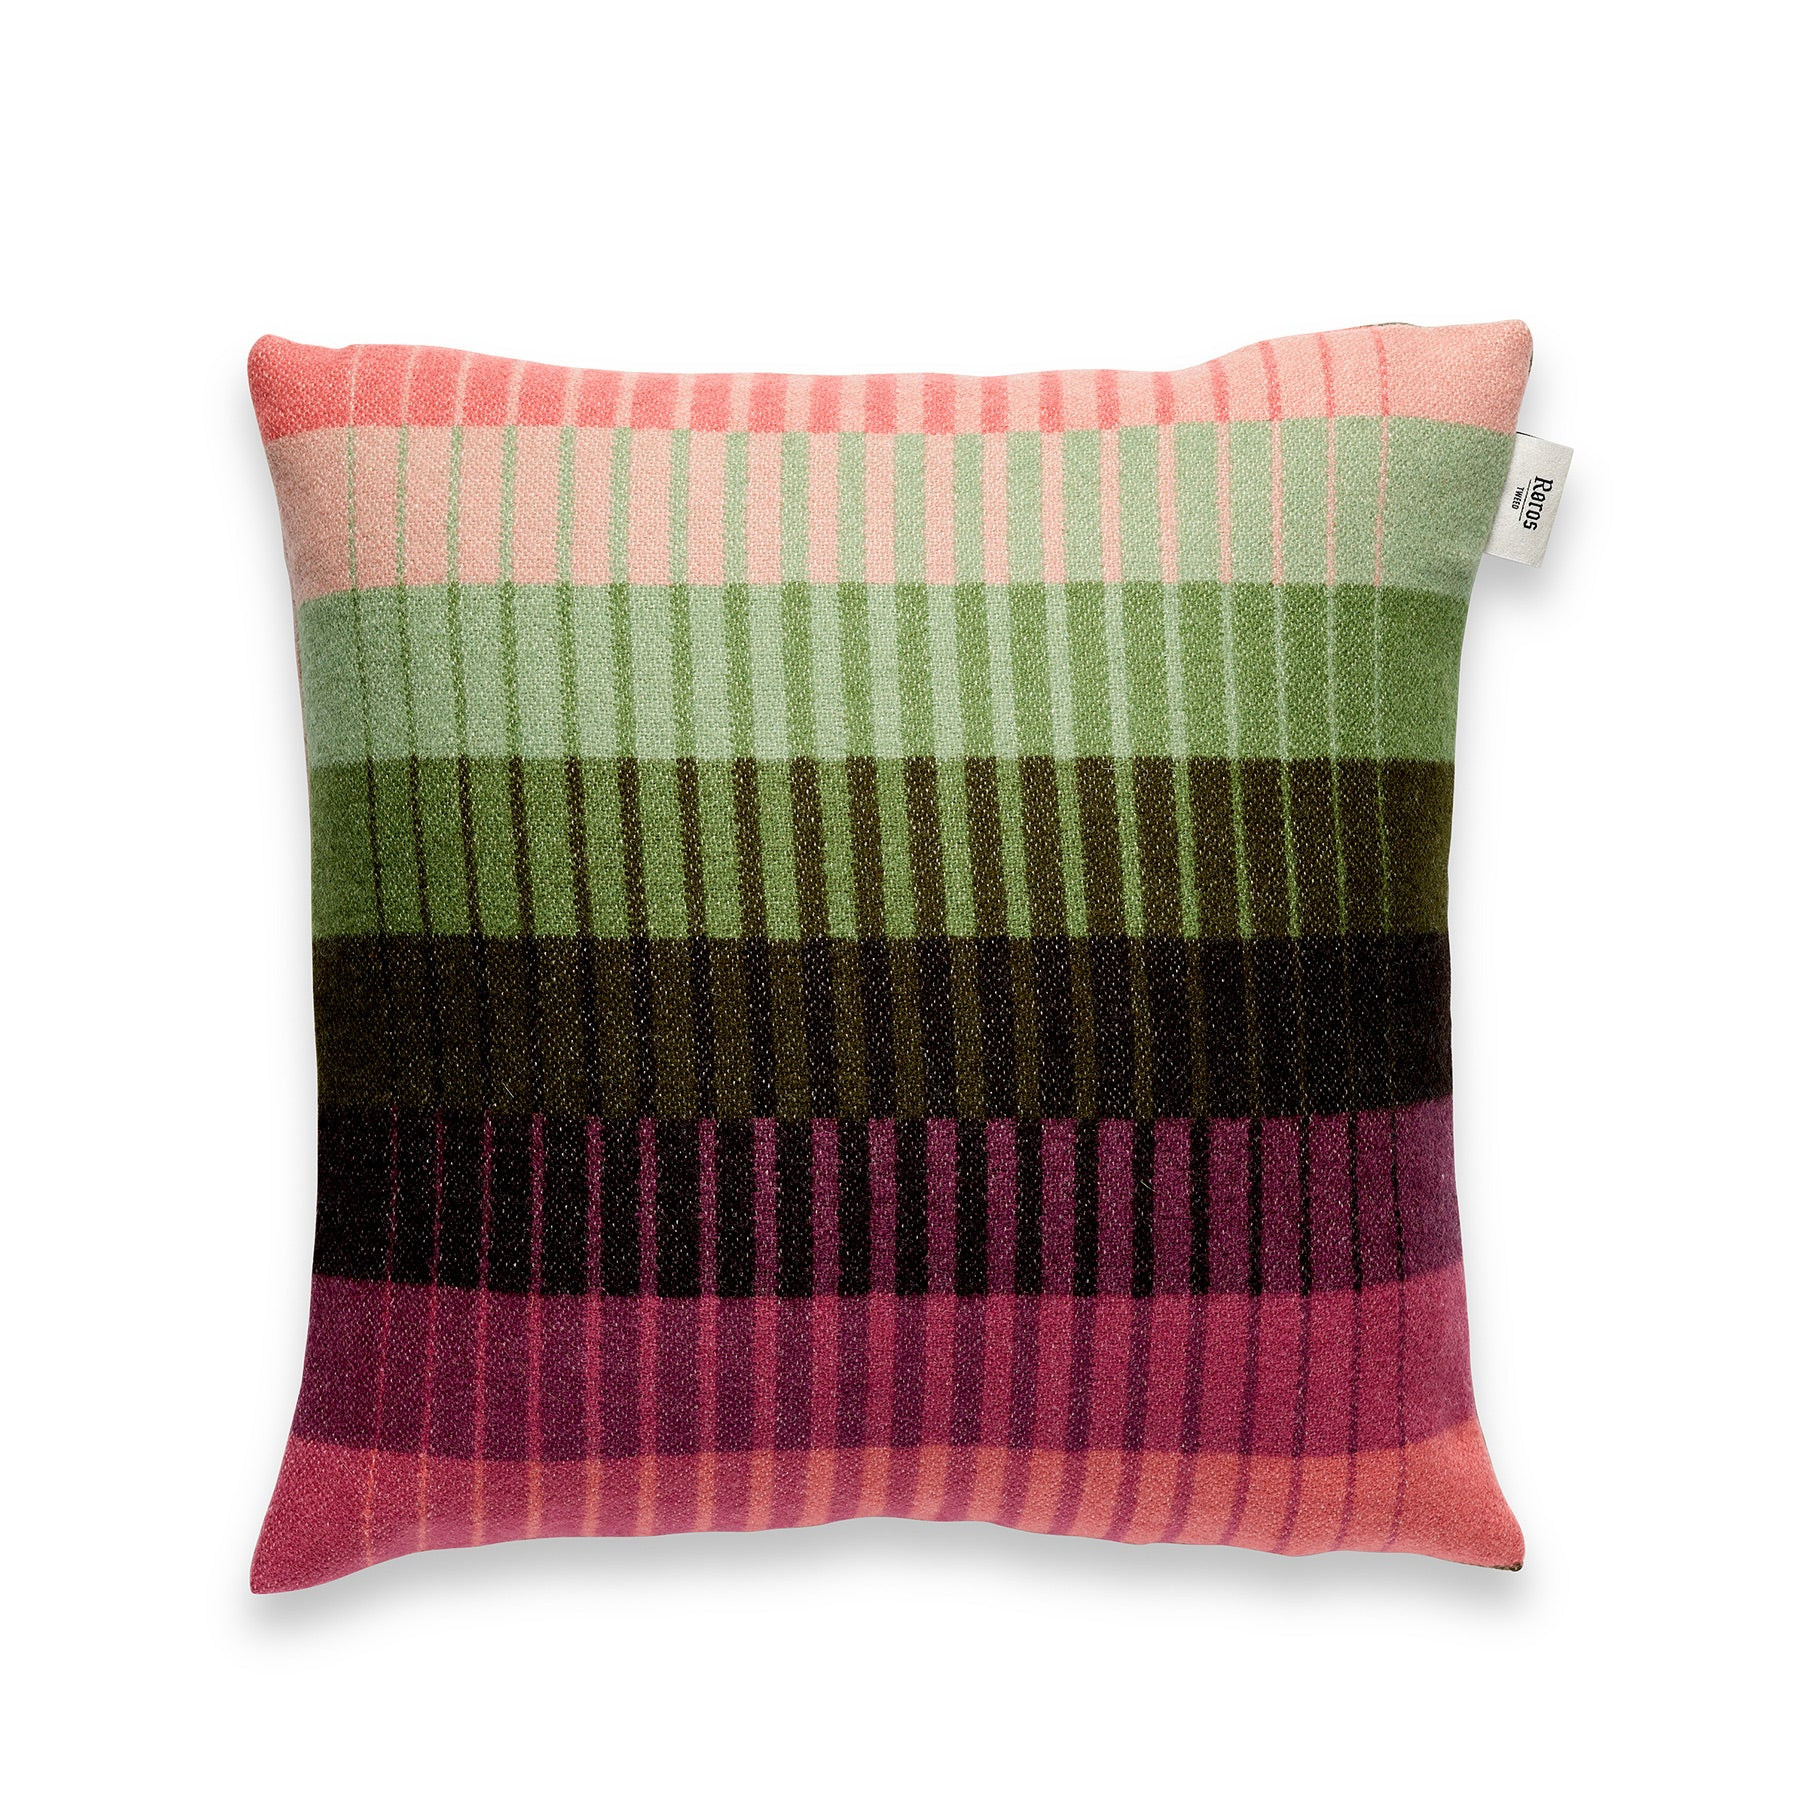 Pillow Asmund Gradient in Pink Green Zoom Image 1